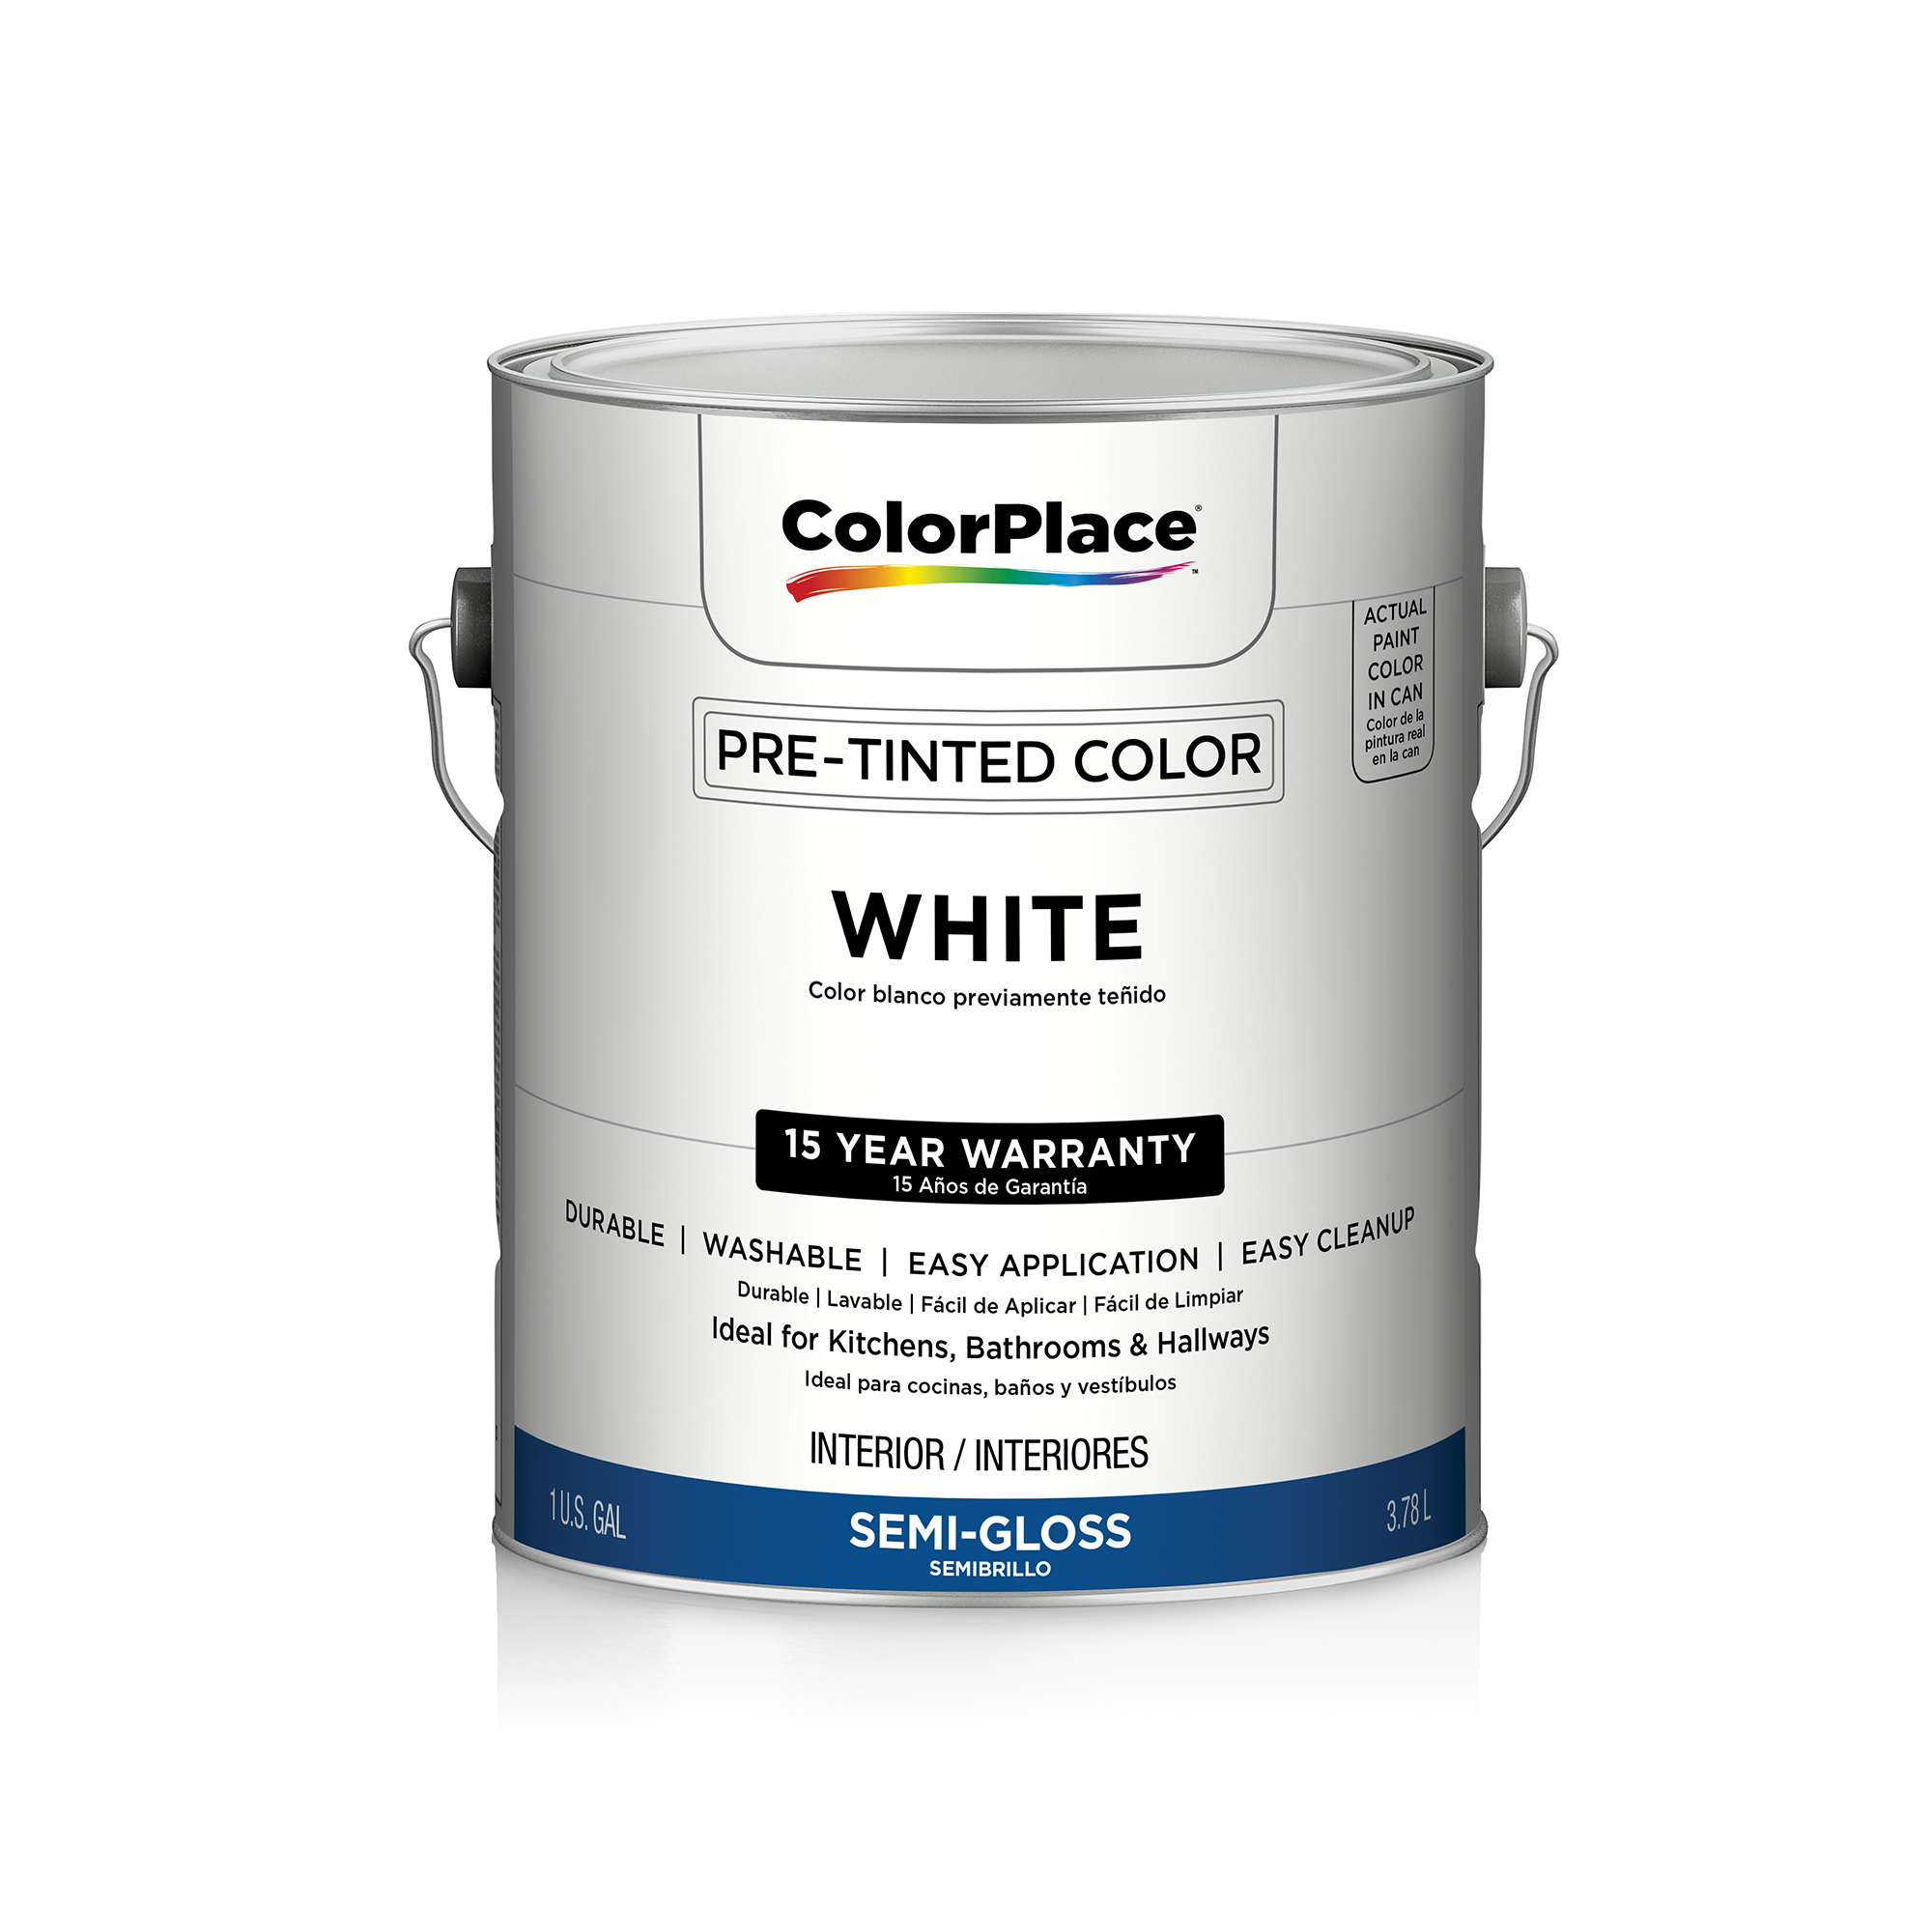 Exceptionnel Color Place Interior Semi Gloss Paint, White